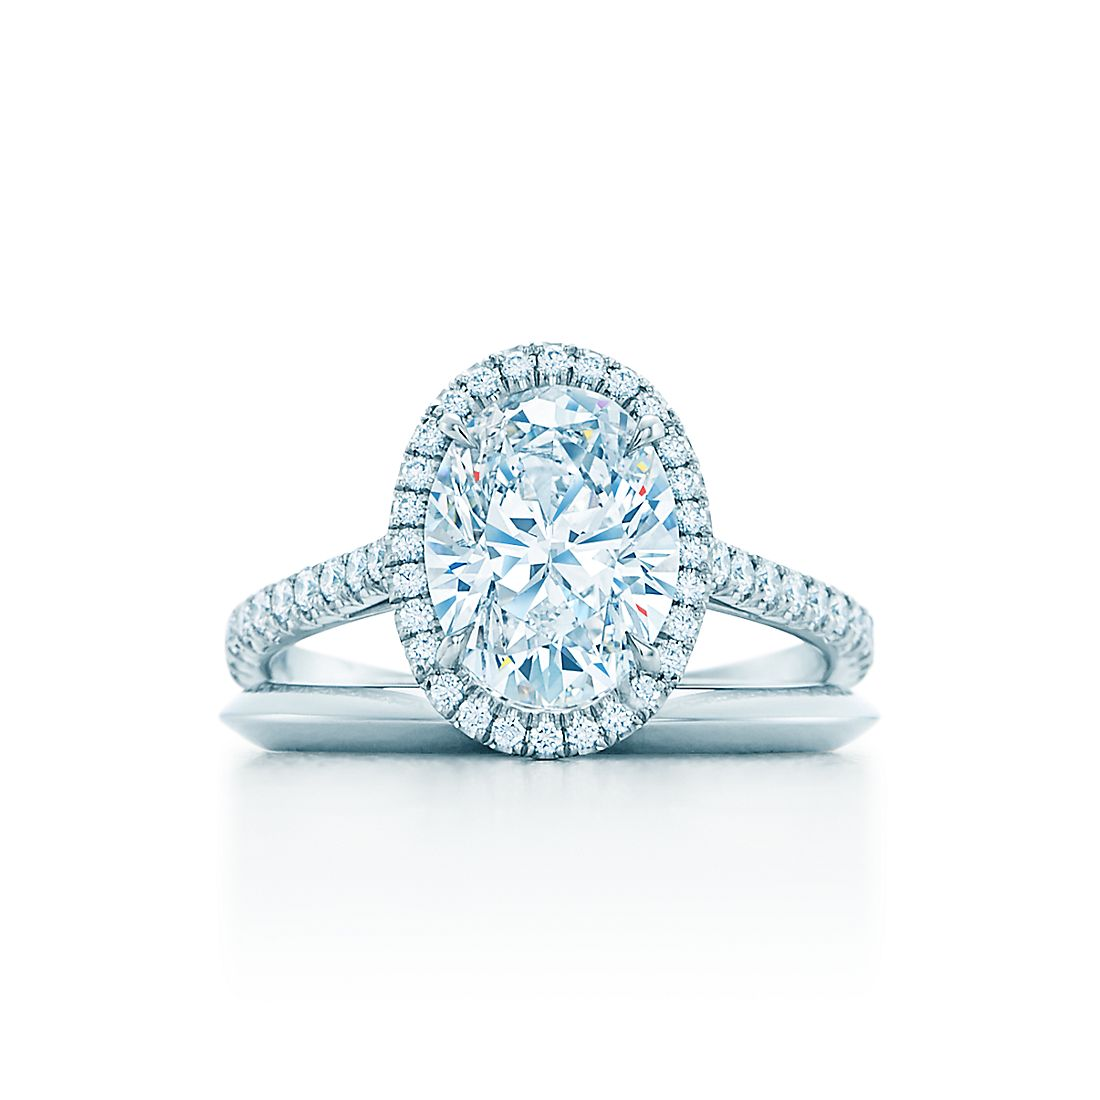 Tiffany Soleste® Oval Engagement Rings | Tiffany & Co.